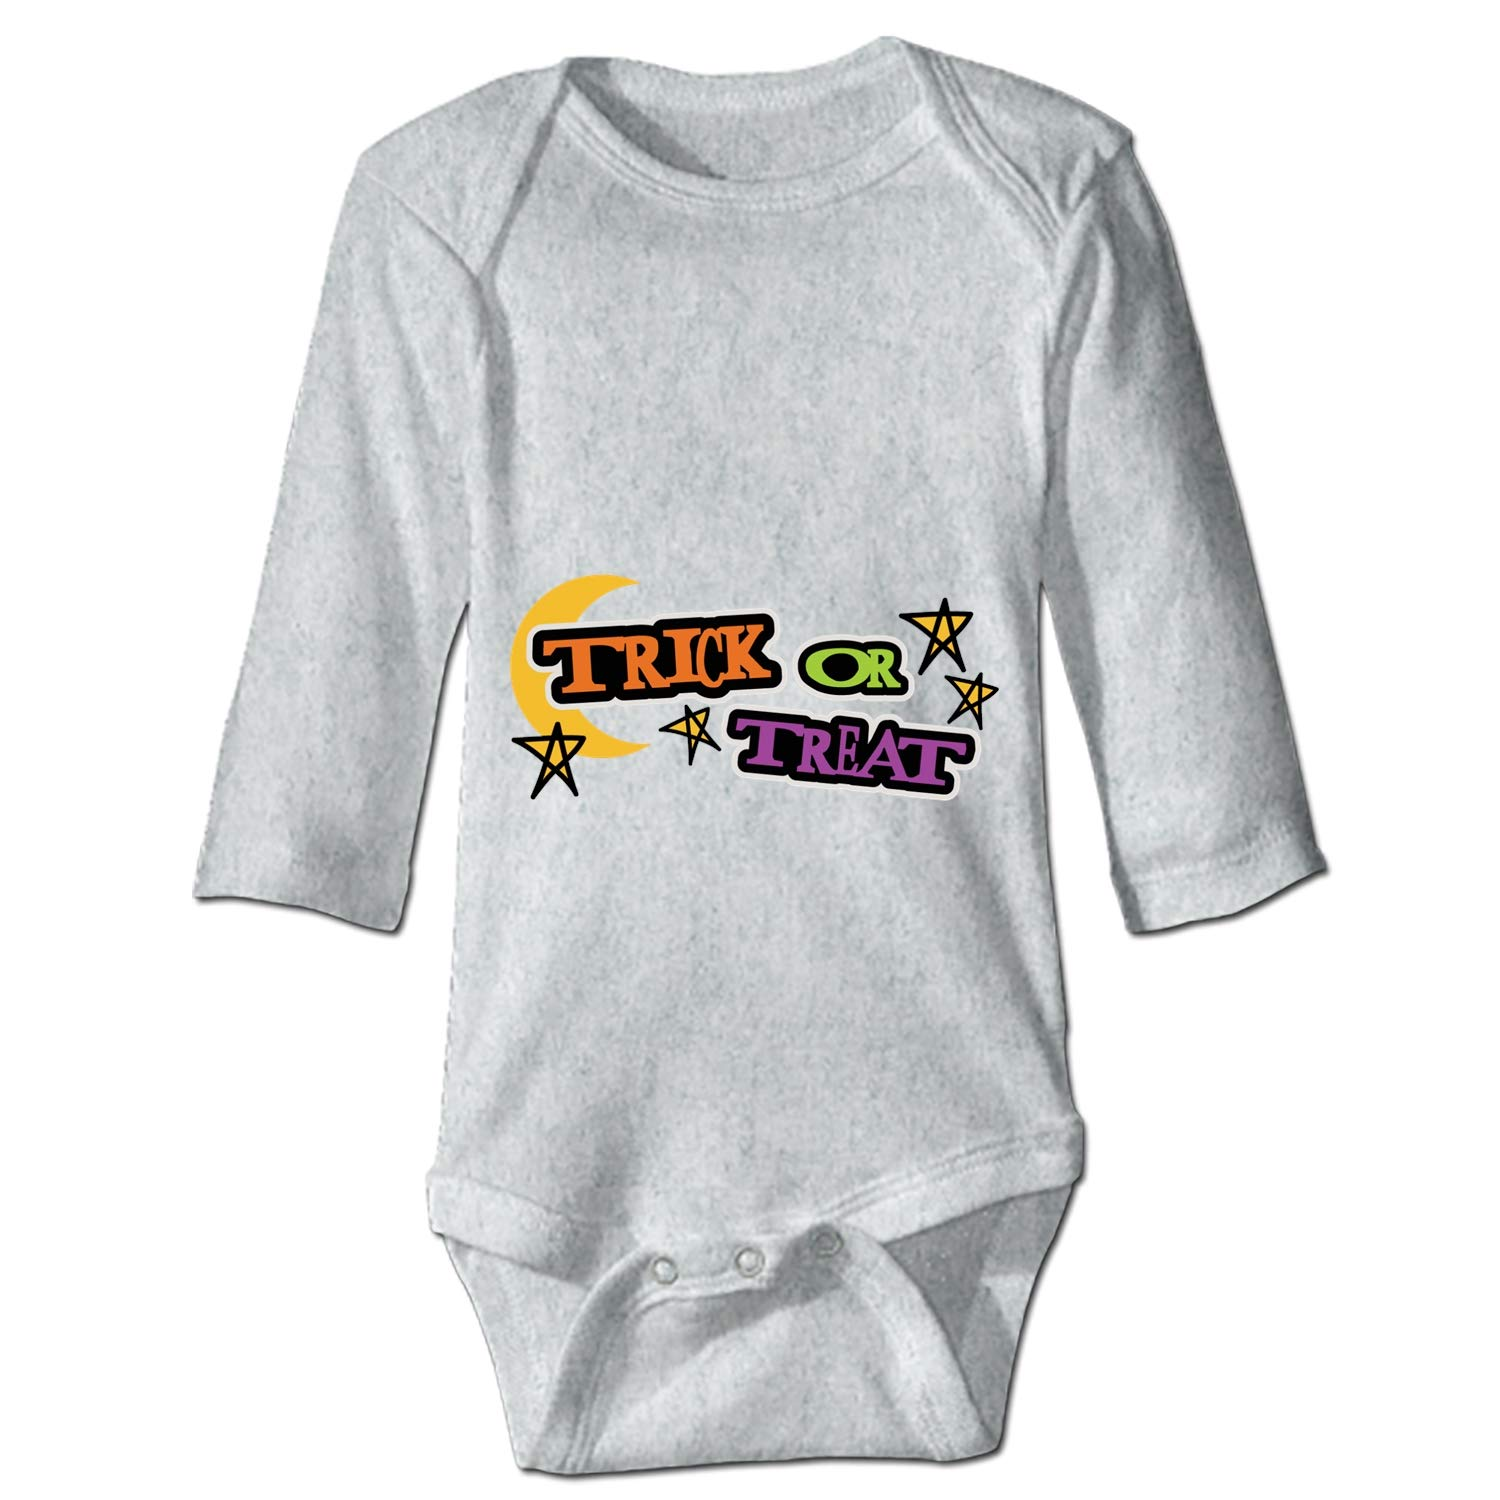 XASFF Party Bodysuit for Baby Long-Sleeve Infant Onesies